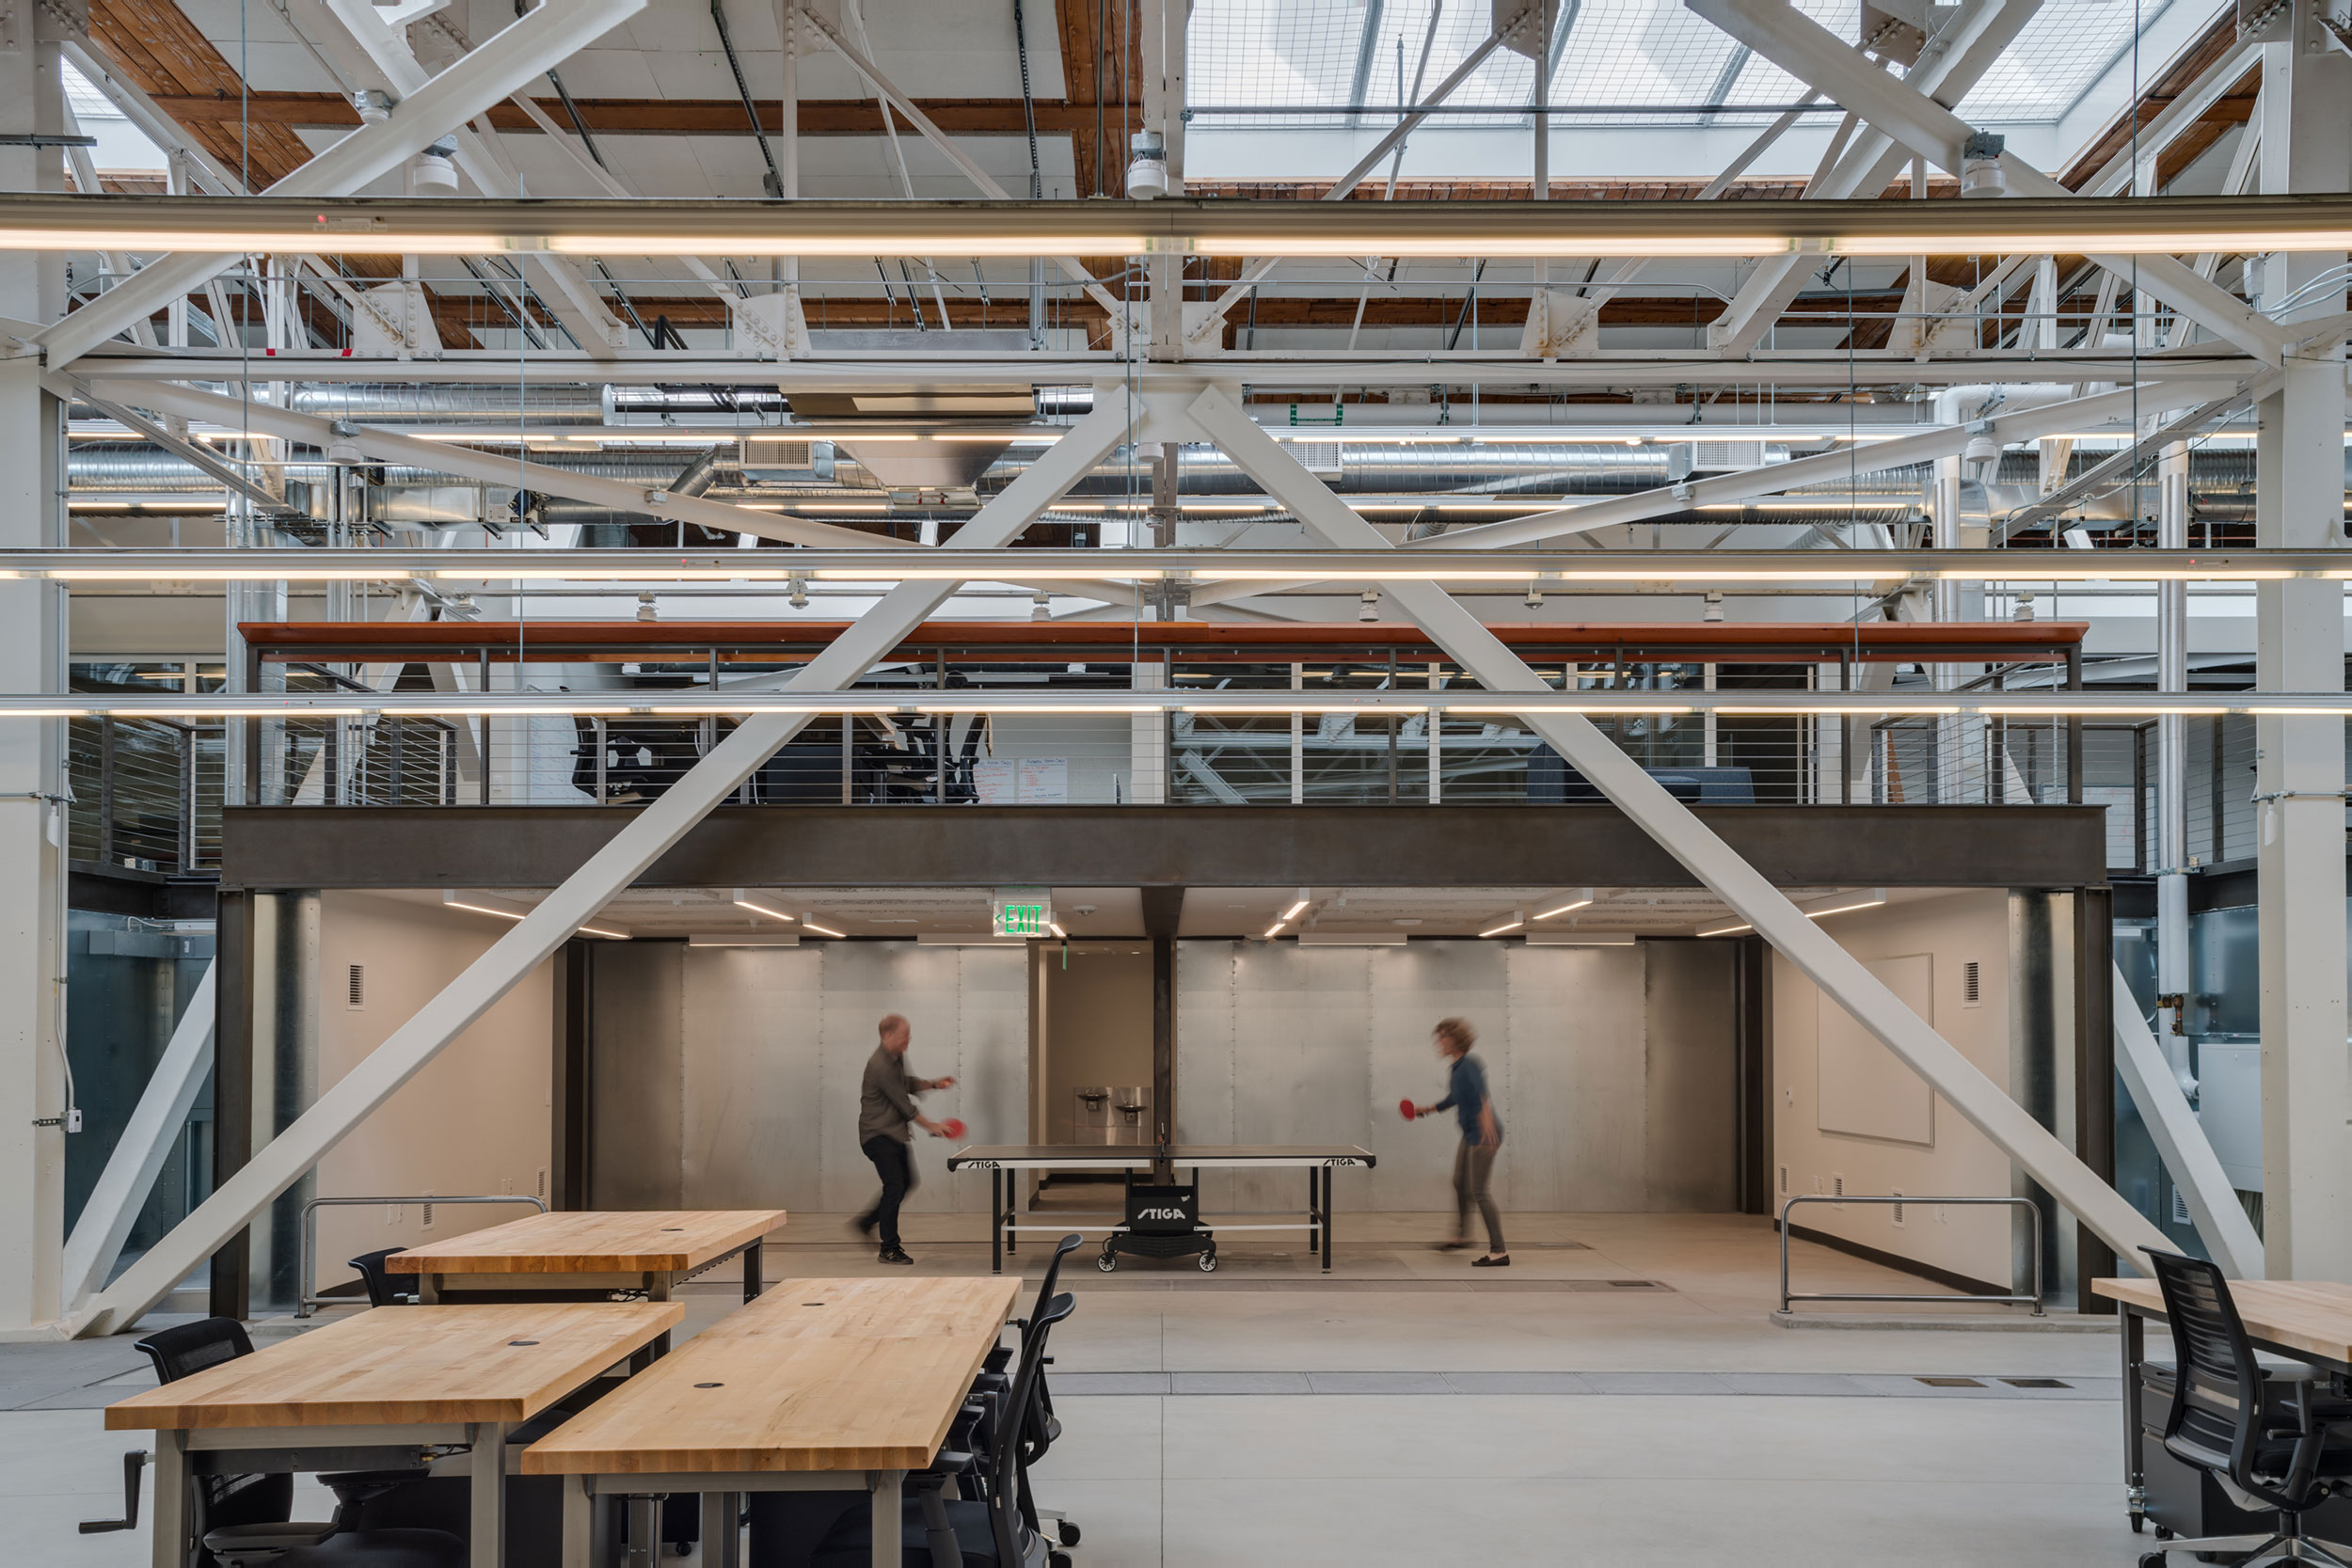 San Francisco Workplace, Office, Adaptive Reuse, Tech Company, Open Workspace, Flexible Office, Natural Light, Steel Truss, Ping Pong, Game Room, Mezzanine